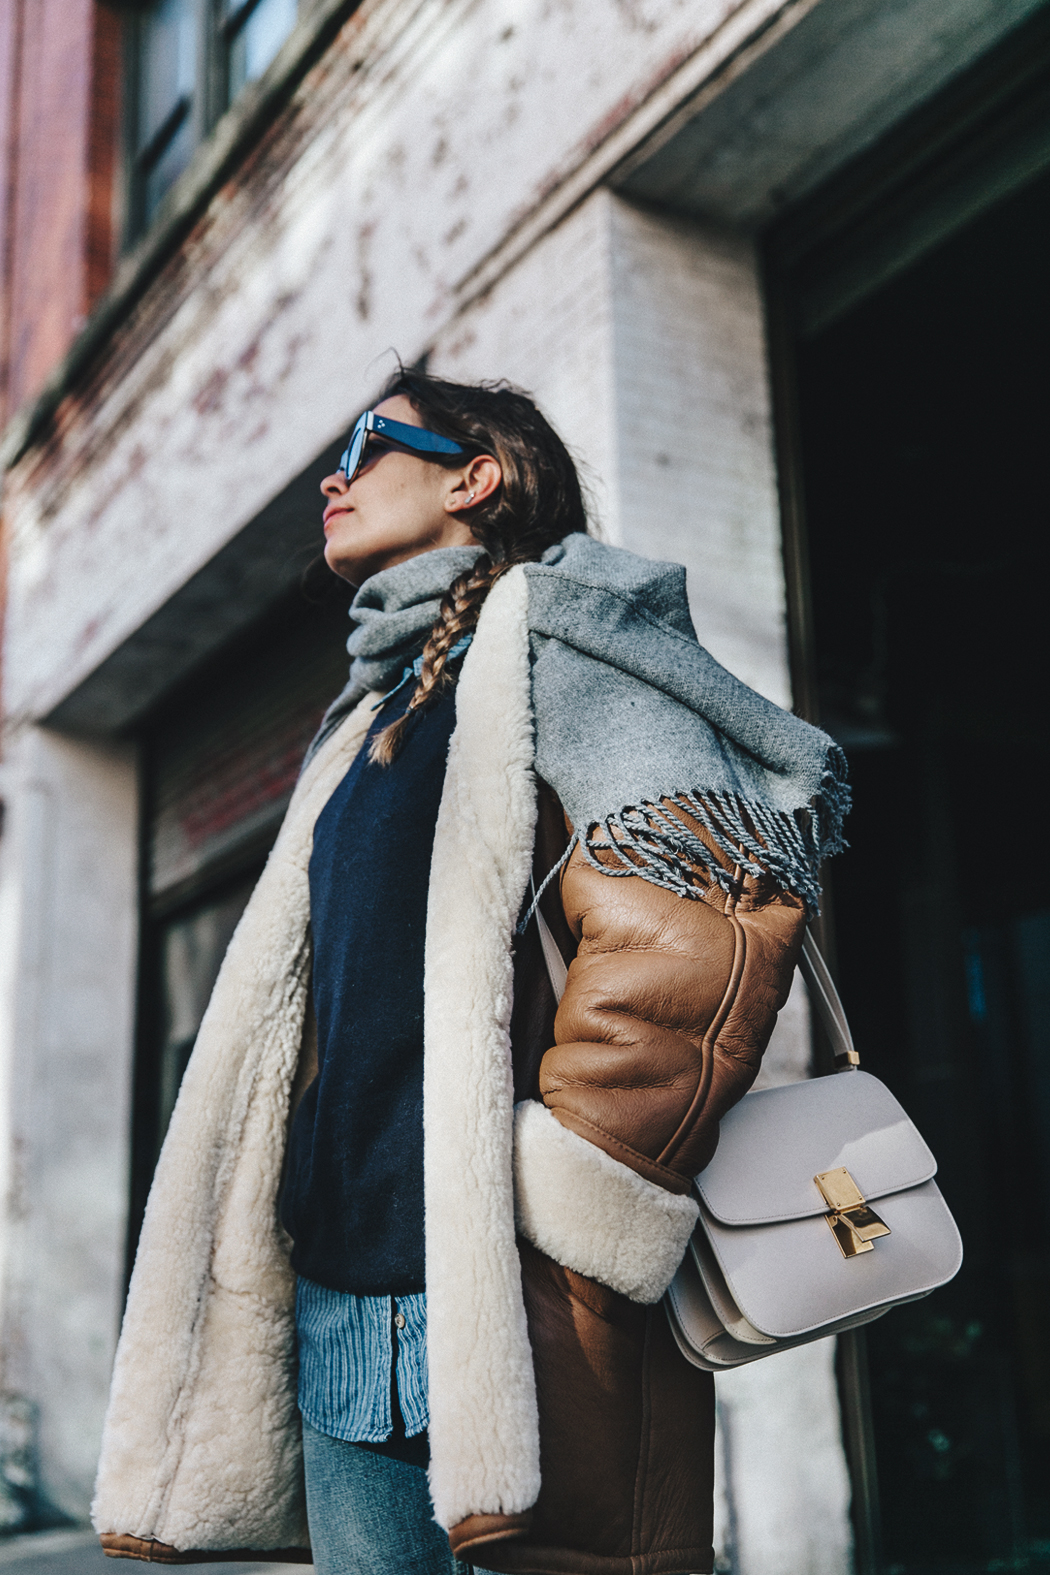 Denim_Lover-Topshop_Jeans-Vintage_Coat-Grey_Scarf-Brown_Booties-Navy_Sweayer-Denim_Shirt-Braids-NYFW-New_York_Fashion_Week-Street_style-Celine_Bag-Vestiaire_Collective-45